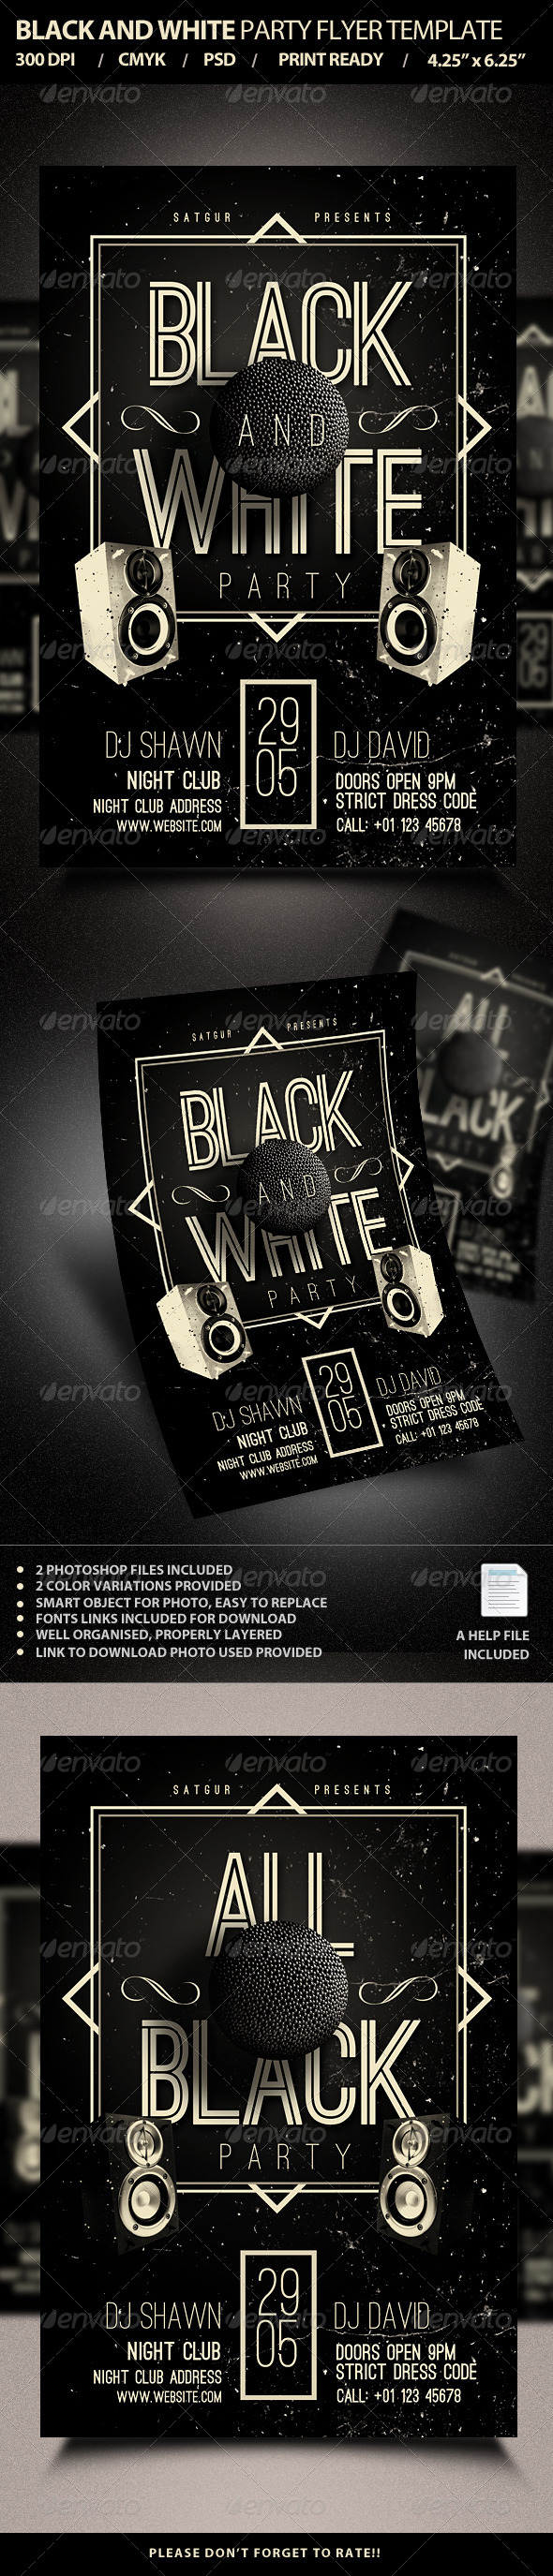 Black And White Party Flyer Template Psd V4 By Satgur Graphicriver